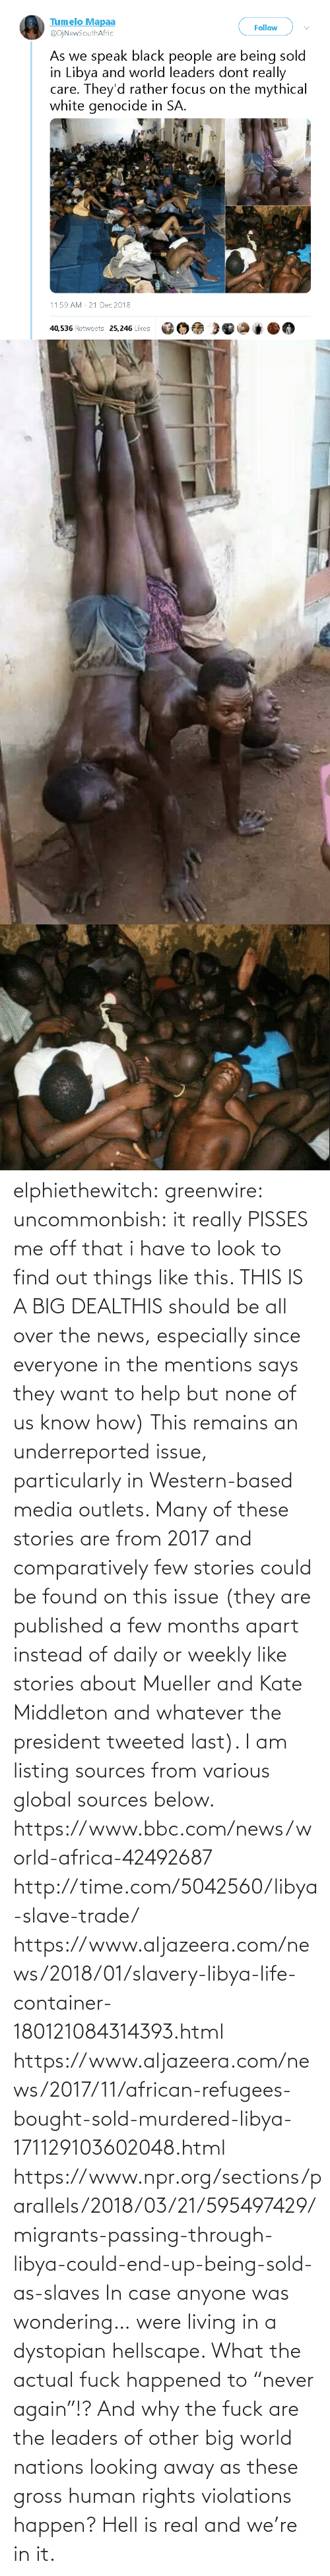 "Off: elphiethewitch: greenwire:  uncommonbish:  it really PISSES me off that i have to look to find out things like this. THIS IS A BIG DEALTHIS should be all over the news, especially since everyone in the mentions says they want to help but none of us know how)  This remains an underreported issue, particularly in Western-based media outlets. Many of these stories are from 2017 and comparatively few stories could be found on this issue (they are published a few months apart instead of daily or weekly like stories about Mueller and Kate Middleton and whatever the president tweeted last). I am listing sources from various global sources below.  https://www.bbc.com/news/world-africa-42492687 http://time.com/5042560/libya-slave-trade/ https://www.aljazeera.com/news/2018/01/slavery-libya-life-container-180121084314393.html https://www.aljazeera.com/news/2017/11/african-refugees-bought-sold-murdered-libya-171129103602048.html https://www.npr.org/sections/parallels/2018/03/21/595497429/migrants-passing-through-libya-could-end-up-being-sold-as-slaves   In case anyone was wondering… were living in a dystopian hellscape.  What the actual fuck happened to ""never again""!? And why the fuck are the leaders of other big world nations looking away as these gross human rights violations happen?  Hell is real and we're in it."